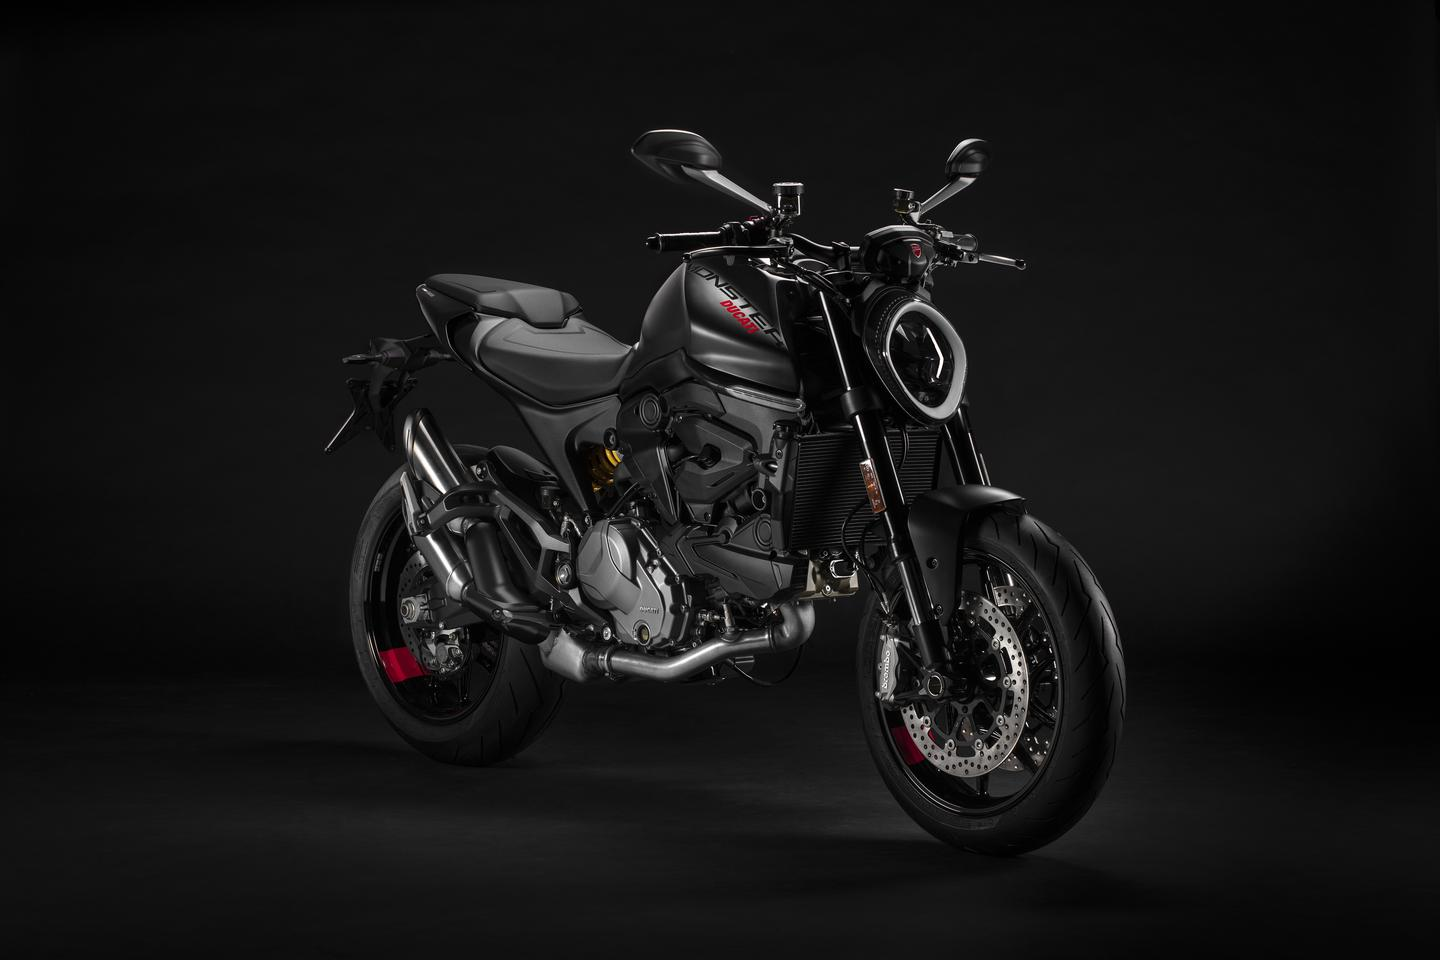 Ducati's 2021 Monster in Dark Stealth